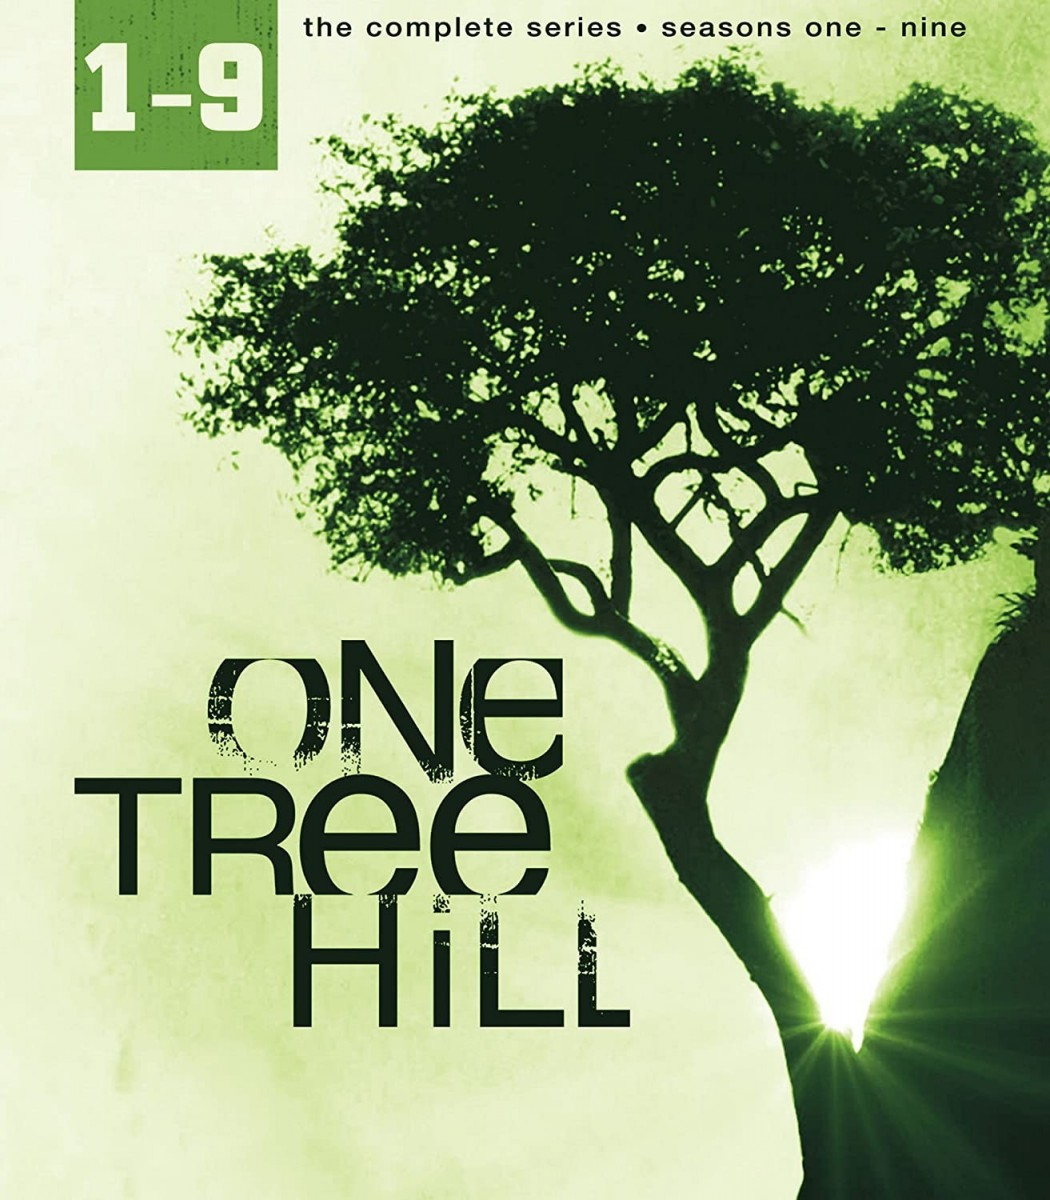 One Tree Hill: The Complete Series (Seasons 1-9) DVD - 1000302447